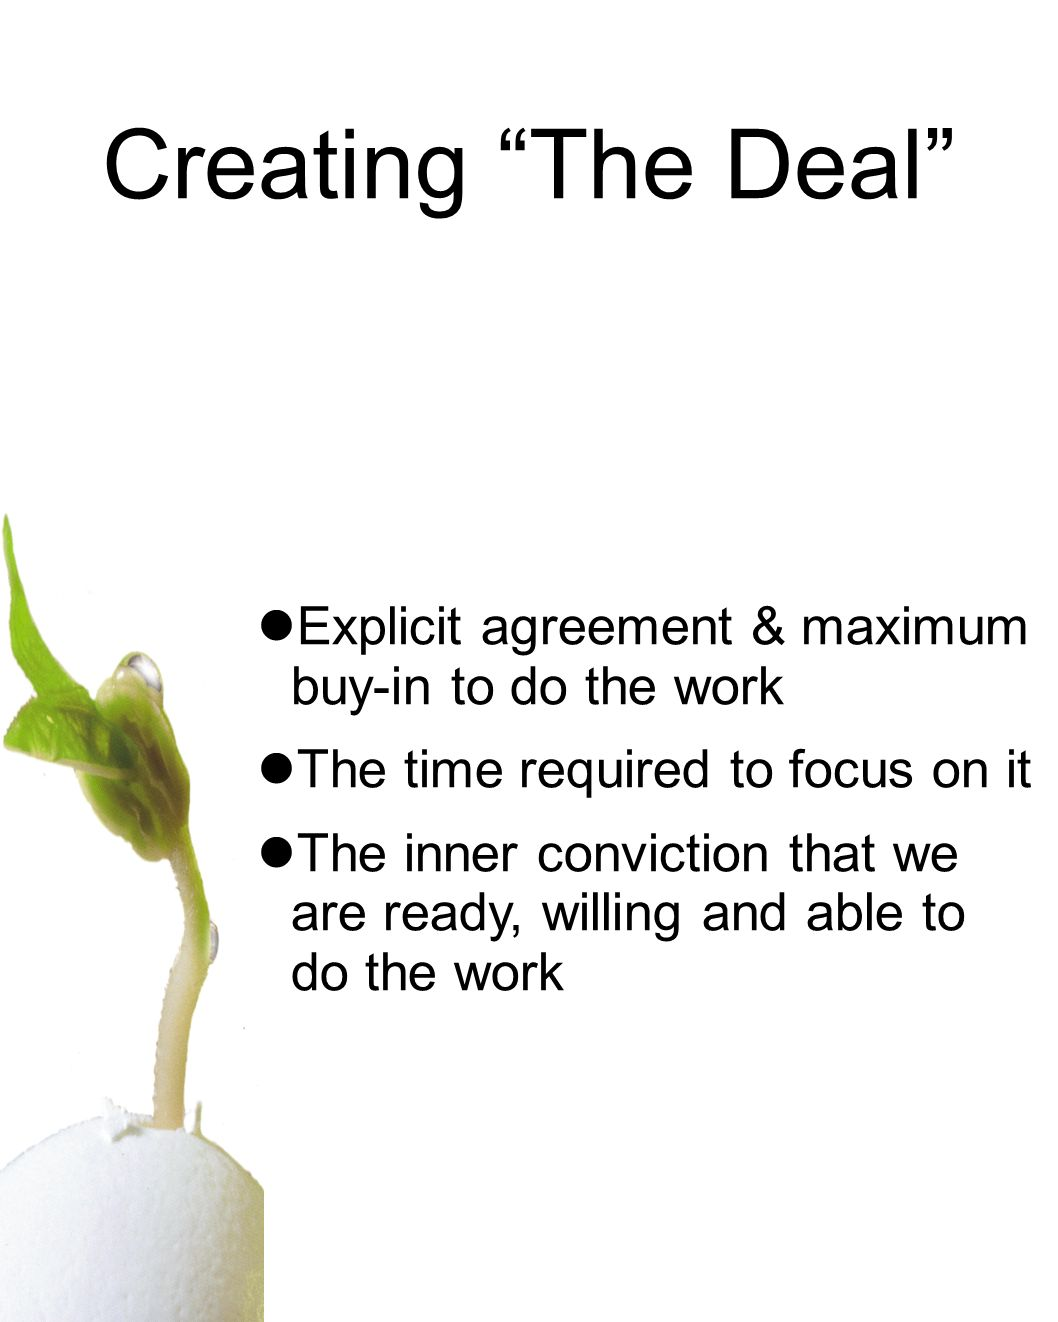 Creating The Deal Explicit agreement & maximum buy-in to do the work The time required to focus on it The inner conviction that we are ready, willing and able to do the work